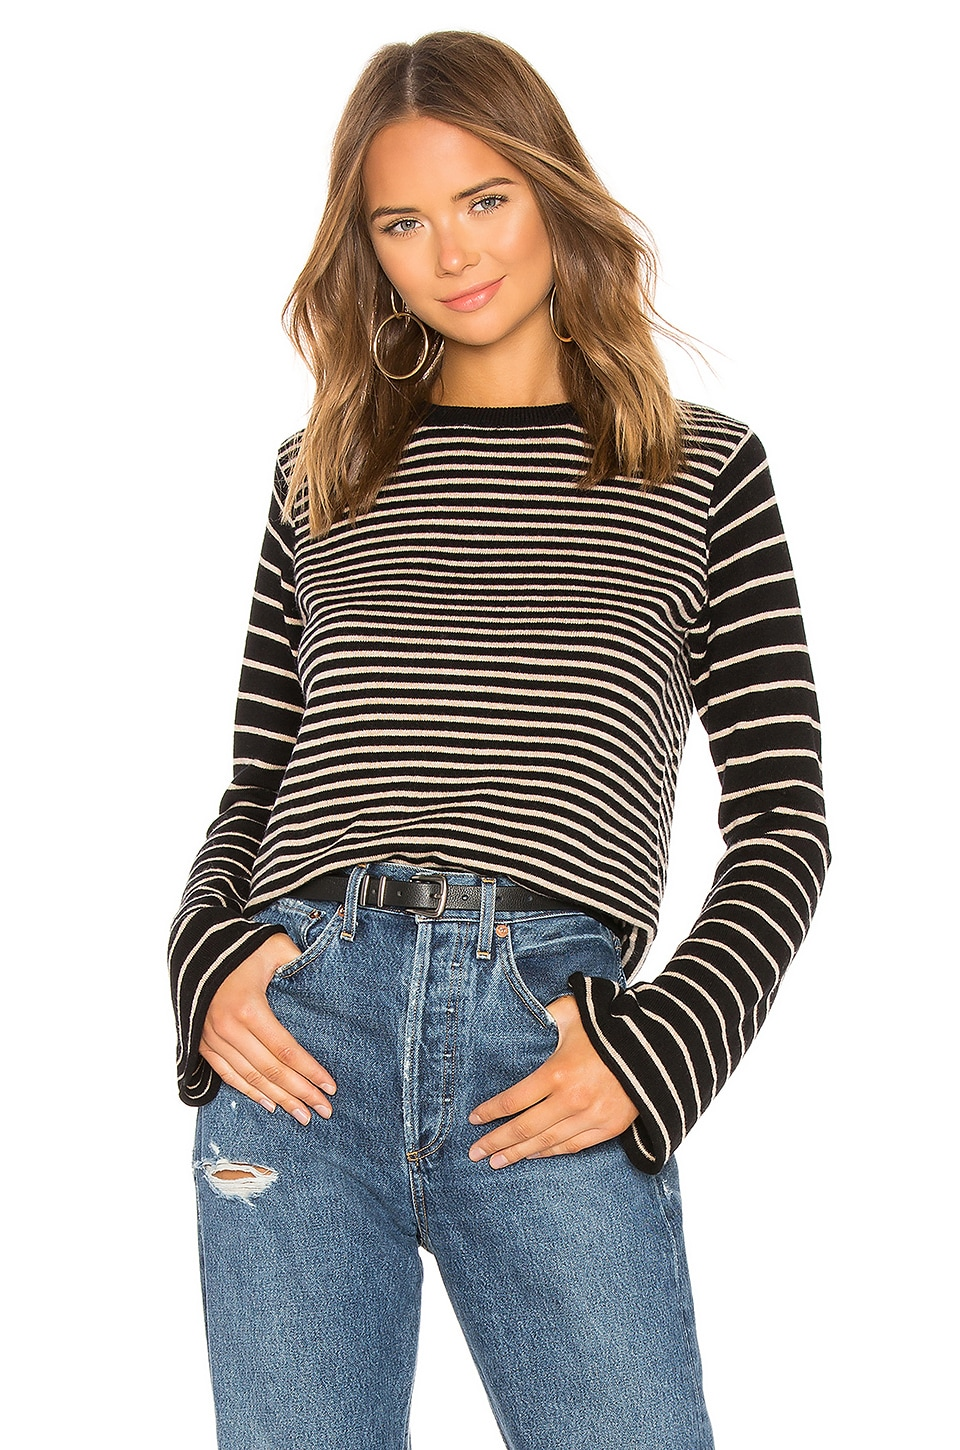 Tabula Rasa Kusaila Stripe Sweater in Black Multi